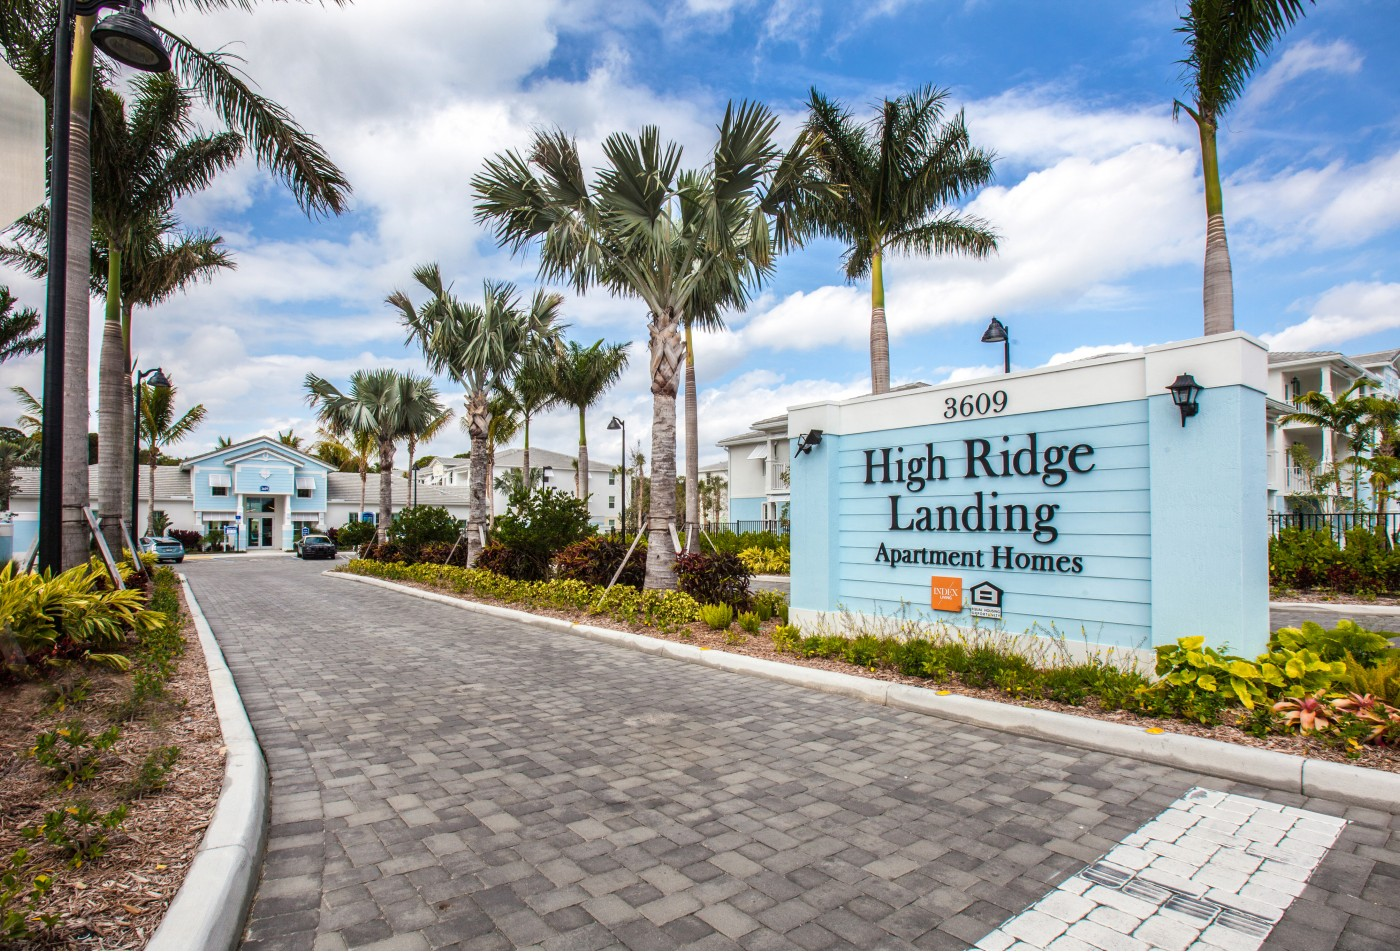 Residents Lounging by the Pool | Boynton Beach FL Apartments For Rent | High Ridge Landing